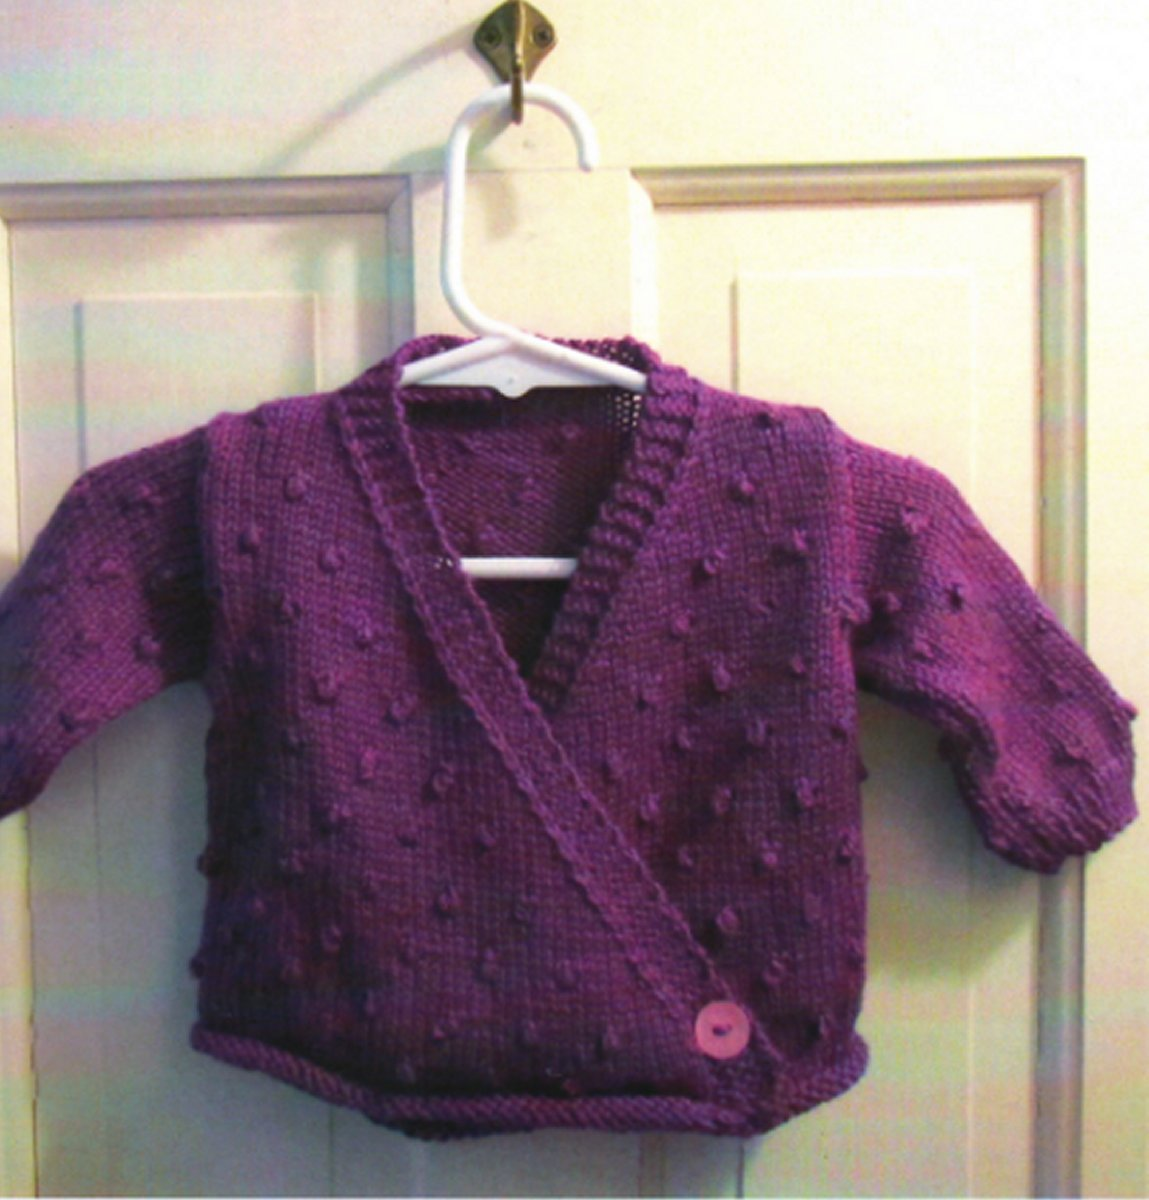 Plymouth Baby & Children Patterns - 2740 Crossover Baby Cardigan Pattern ...